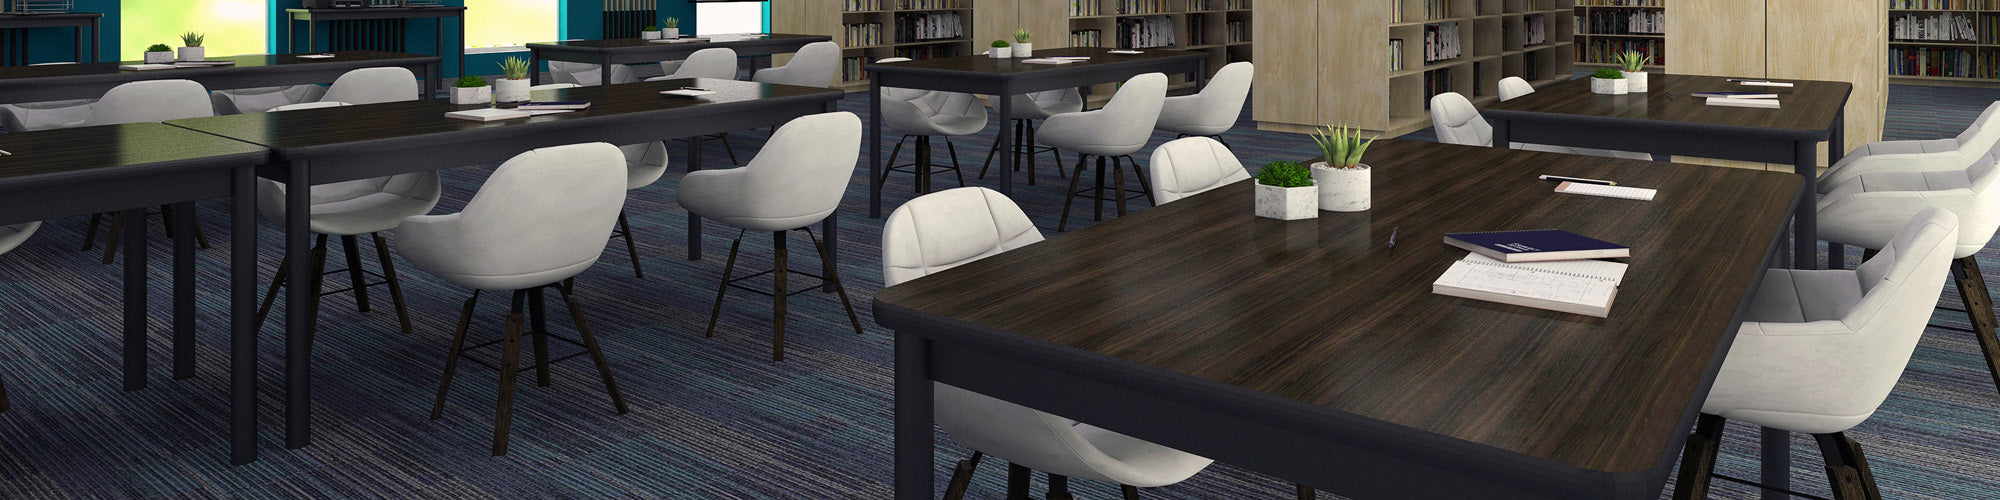 UTILITY, LAB & LIBRARY TABLES